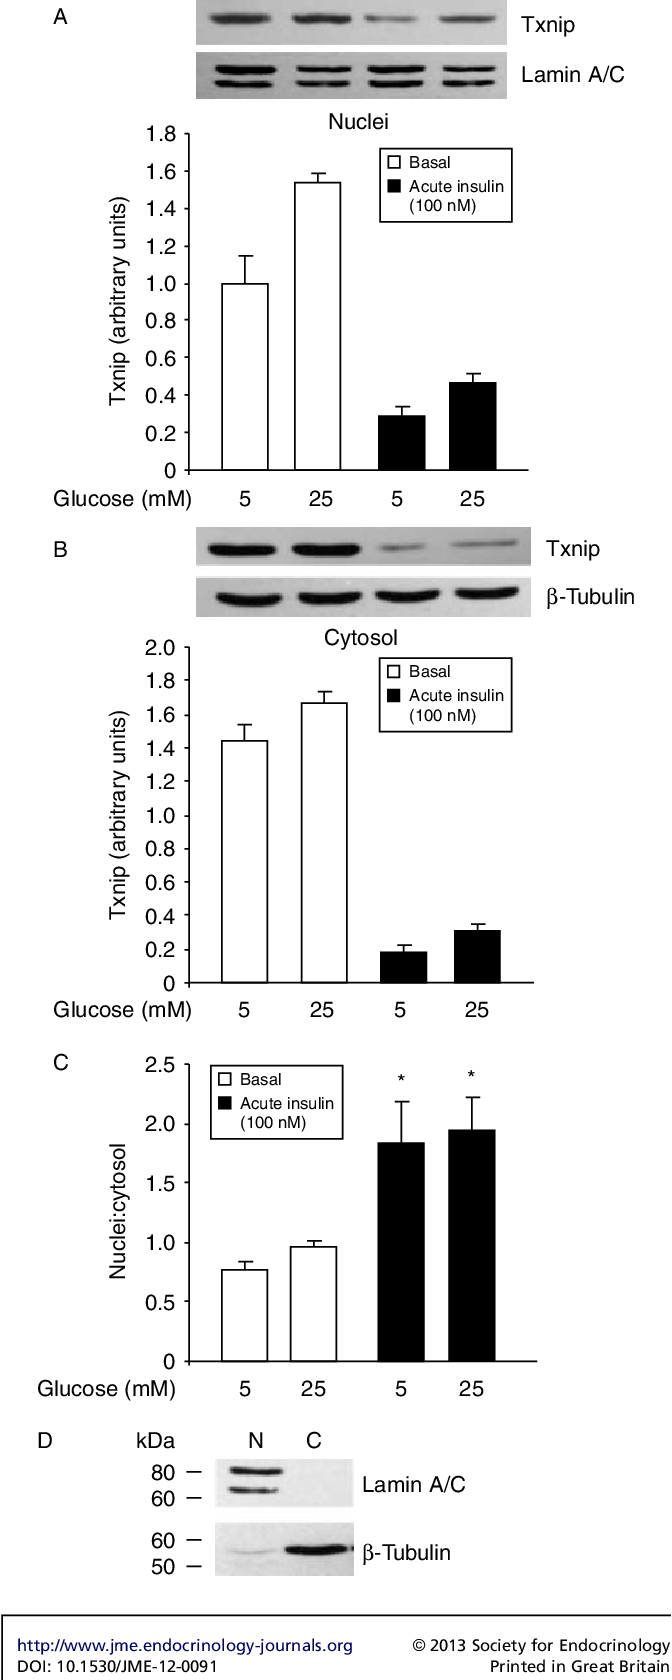 Figure 3 The effects of high glucose and acute insulin on the distribution of Txnip between nuclei and cytosol. (A, B and C) Cells were incubated for 18 h in media containing low (5 mM) or high (25 mM) glucose, 1% FBS and stimulated or not with 100 nM insulin for 15 min. Before analysis of Txnip by immunoblotting, cytosolic and nuclear extracts were prepared (Dignam et al. 1983). High glucose increases Txnip more in nuclei than in the cytosol. Acute insulin markedly decreases Txnip in nuclei and in the cytosol, but also promotes the transfer of Txnip into nuclei. Ratio of nuclei:cytosol increased approximately twofold after 15 min with insulin (*P!0.05). (D) Representative western blots of nuclear and cytosolic preps for the proteins lamin A/C (nuclear marker) and b-tubulin (cytosolic marker) showing appropriate fraction enrichment.